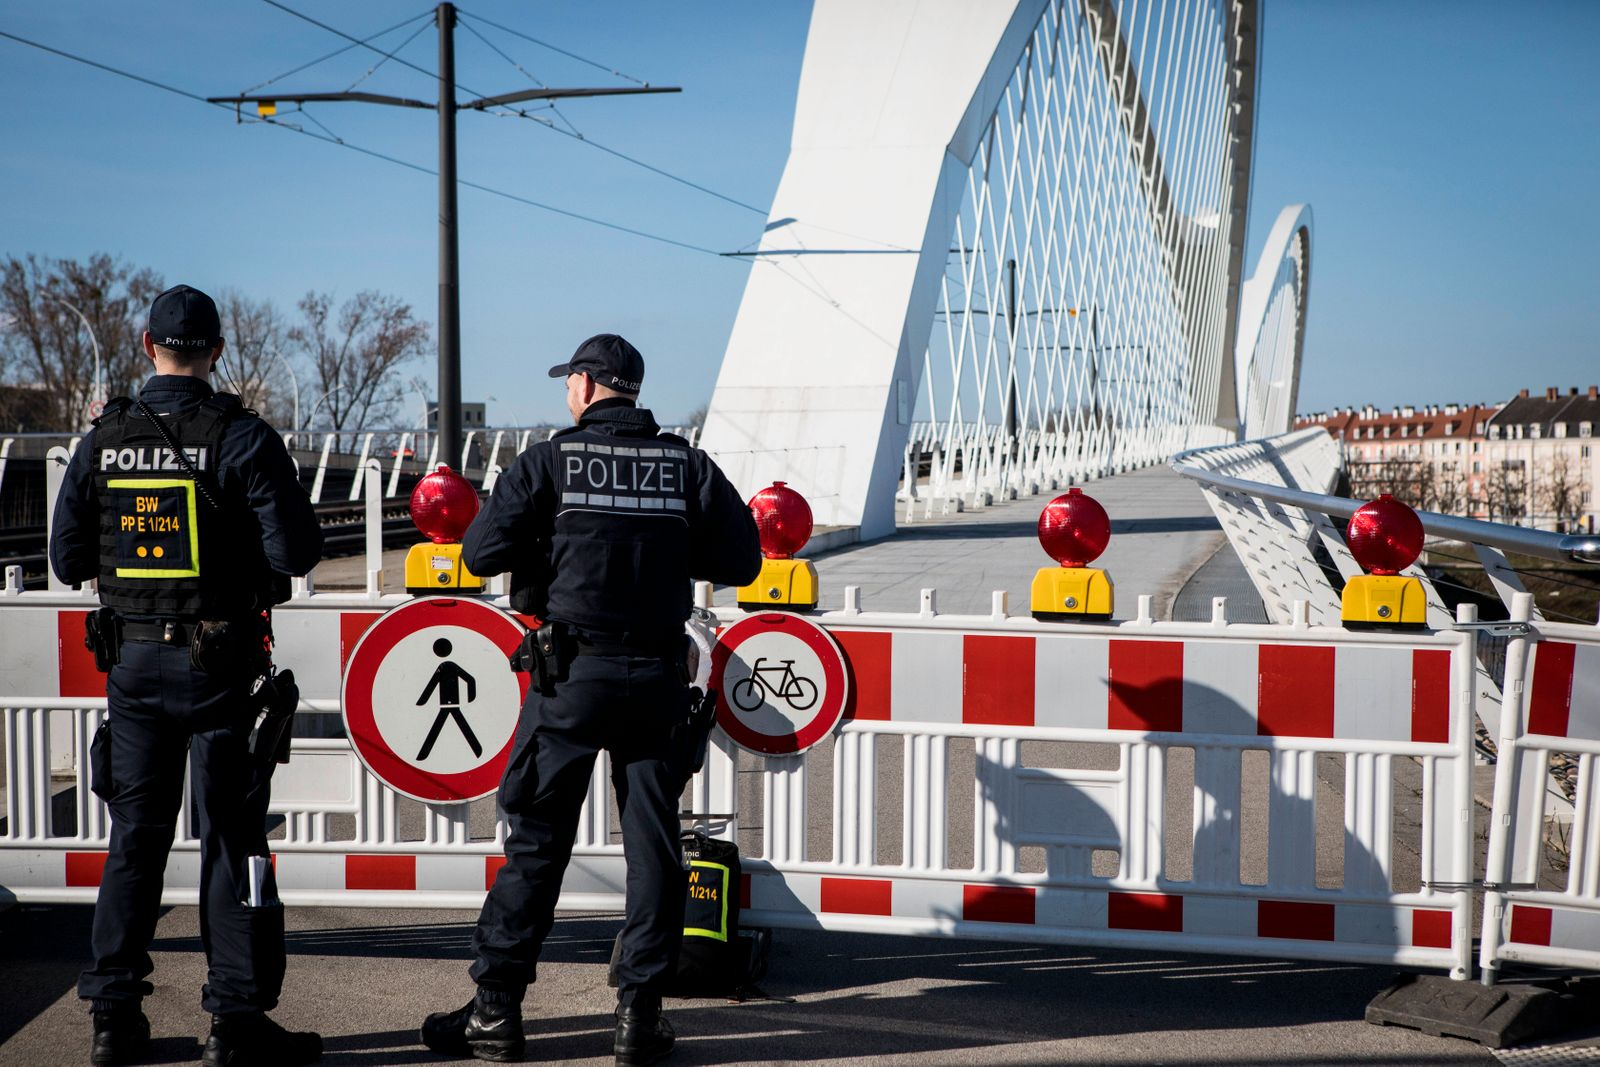 News Bilder des Tages German police officers stand at the French-German border between Kehl and Strasbourg, on March 16